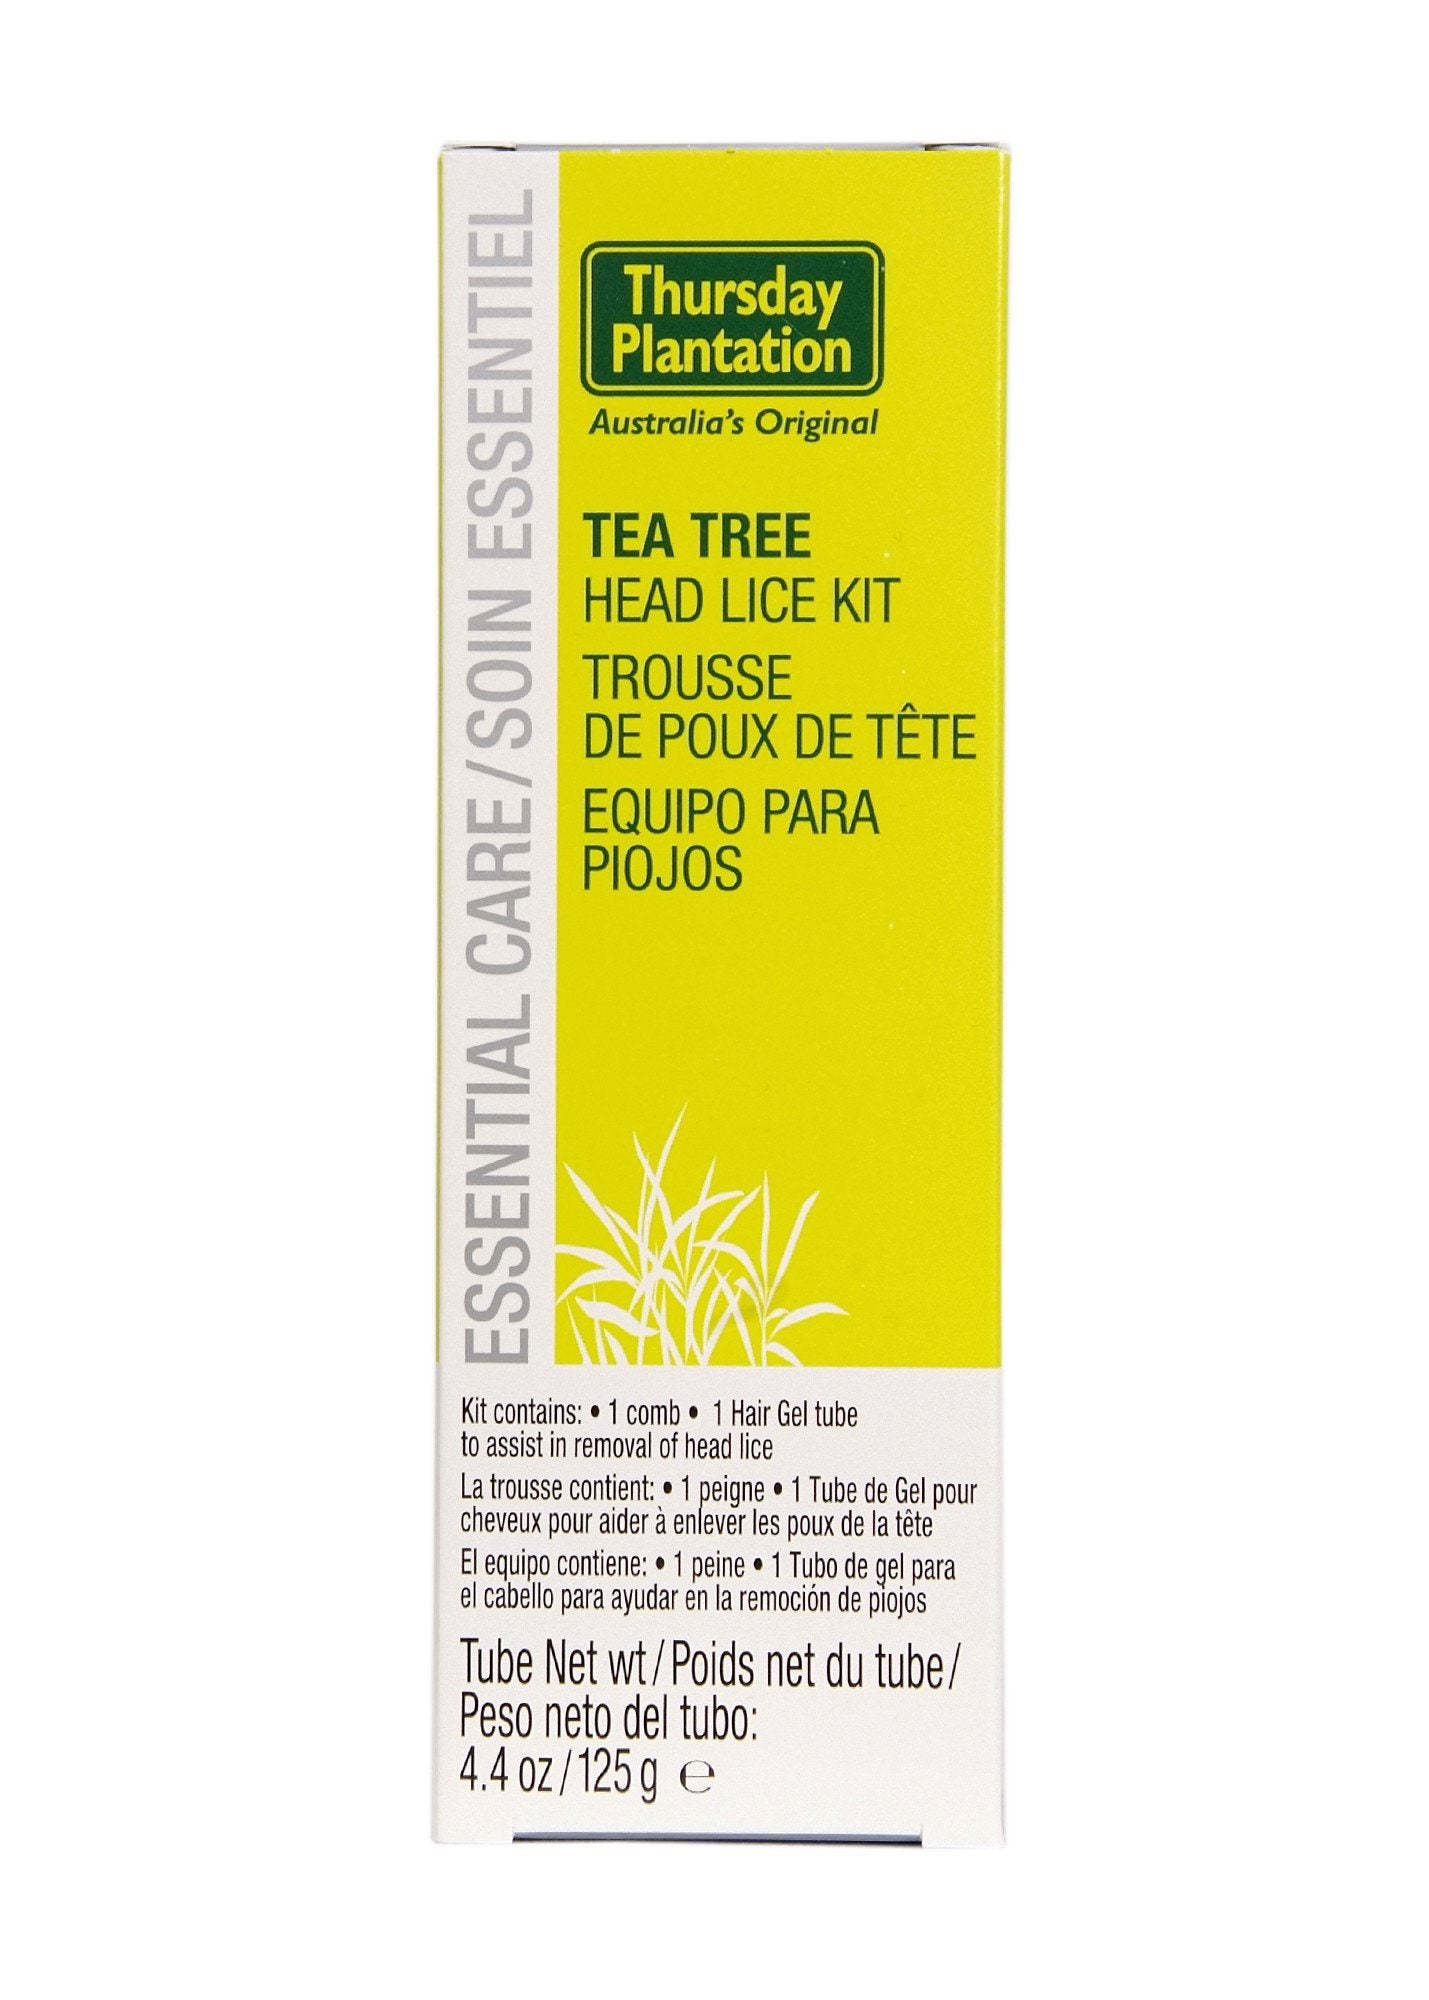 Supplements & Vitamins - Thursday Plantation - Tea Tree Head Lice Kit, 125g